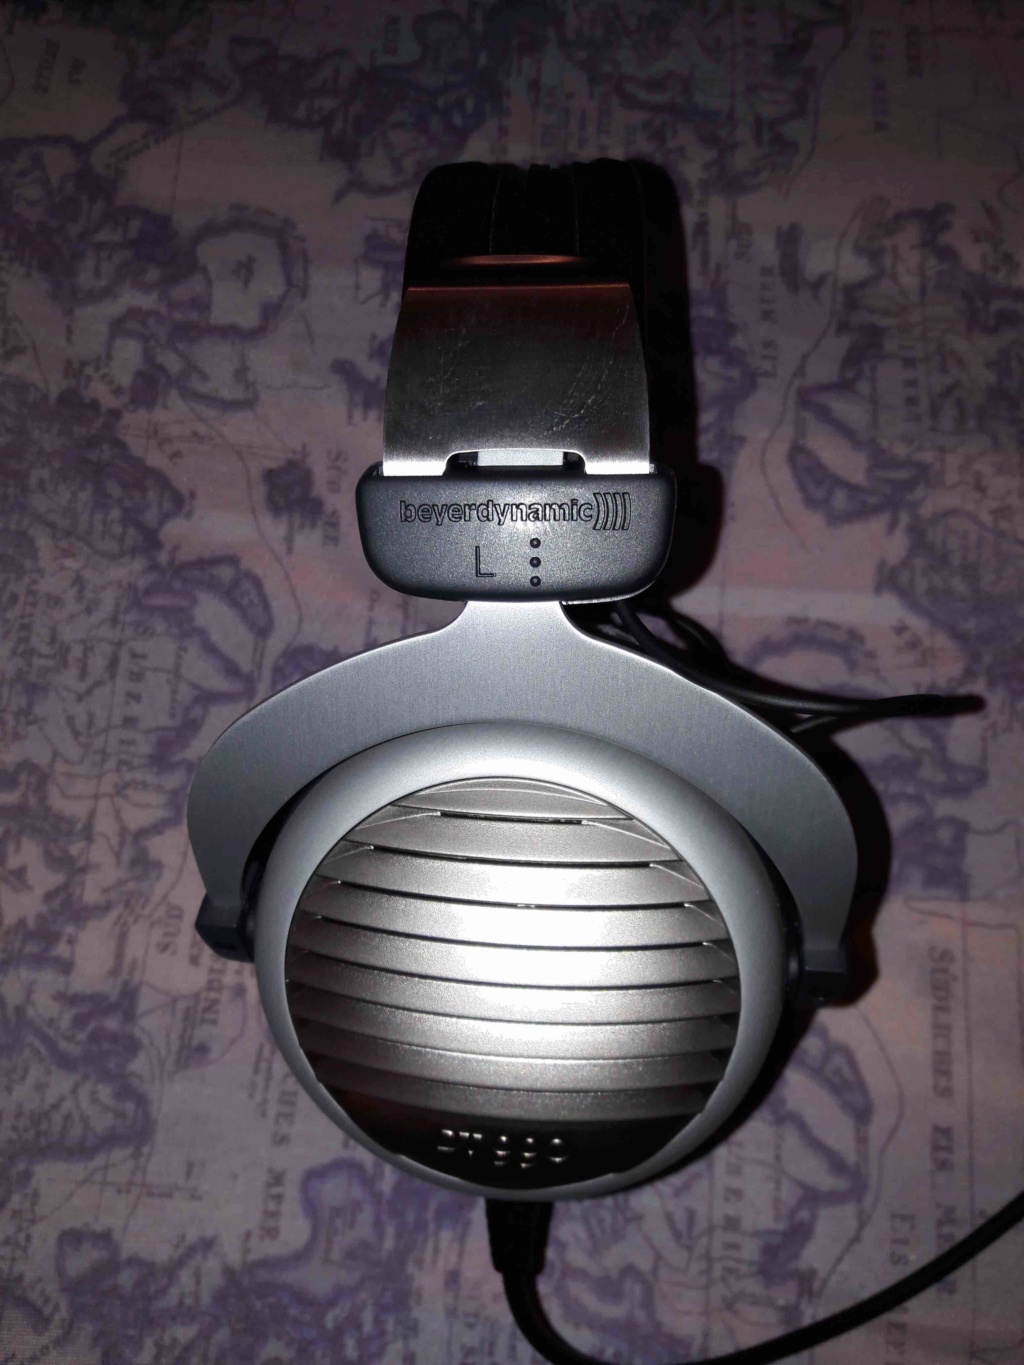 [ RITIRATO DALLA VENDITA ] Grazie. ( VB ) Vendo Beyerdynamic DT-990 Edition 250 Ohm/Dynamic Headphone.IN GARANZIA. 01_e-j10